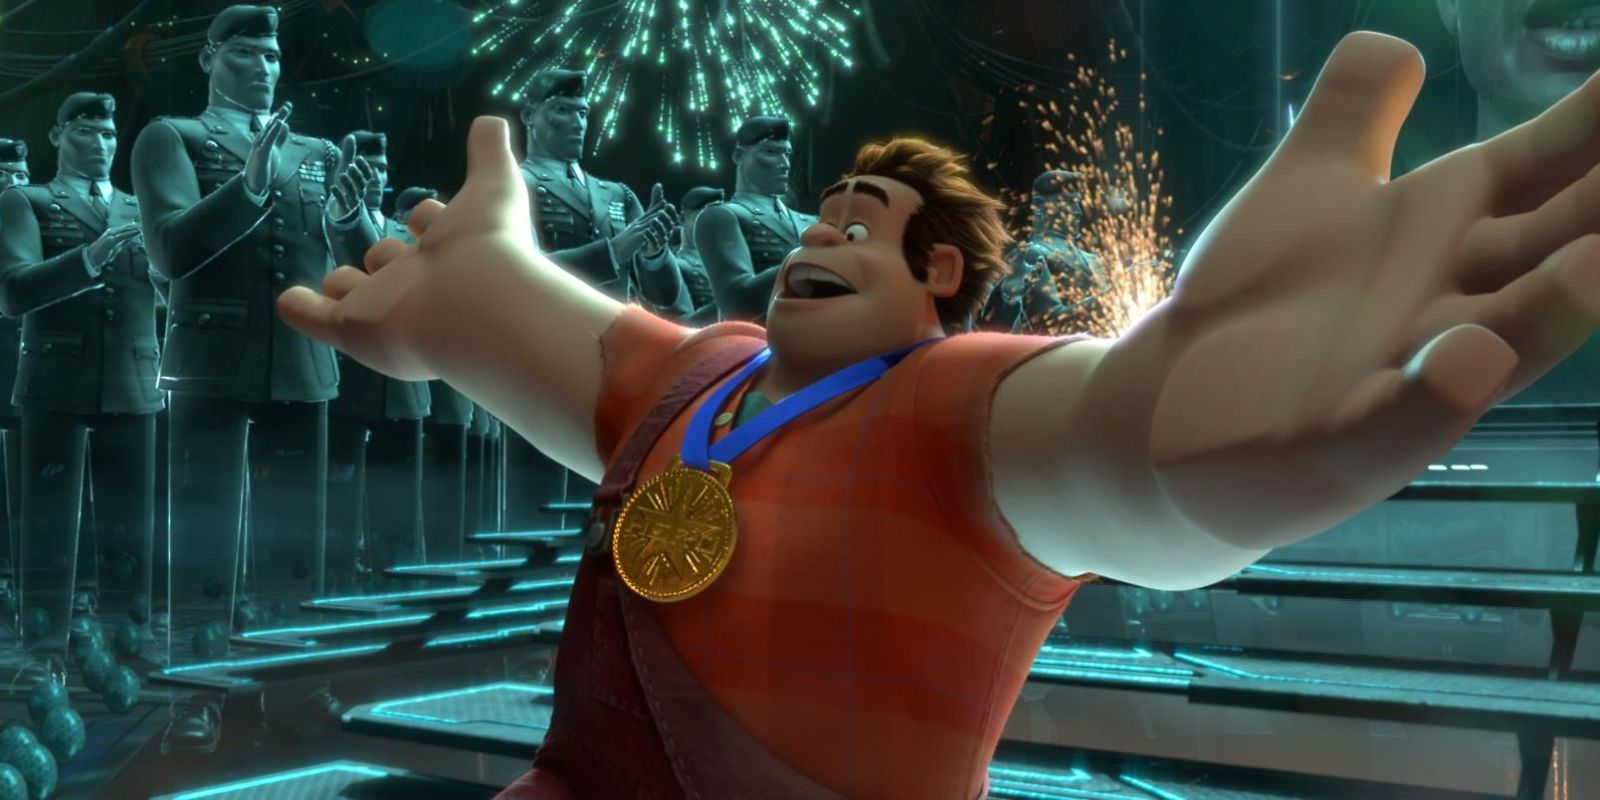 Wreck-It Ralph 2's first trailer is coming tomorrow